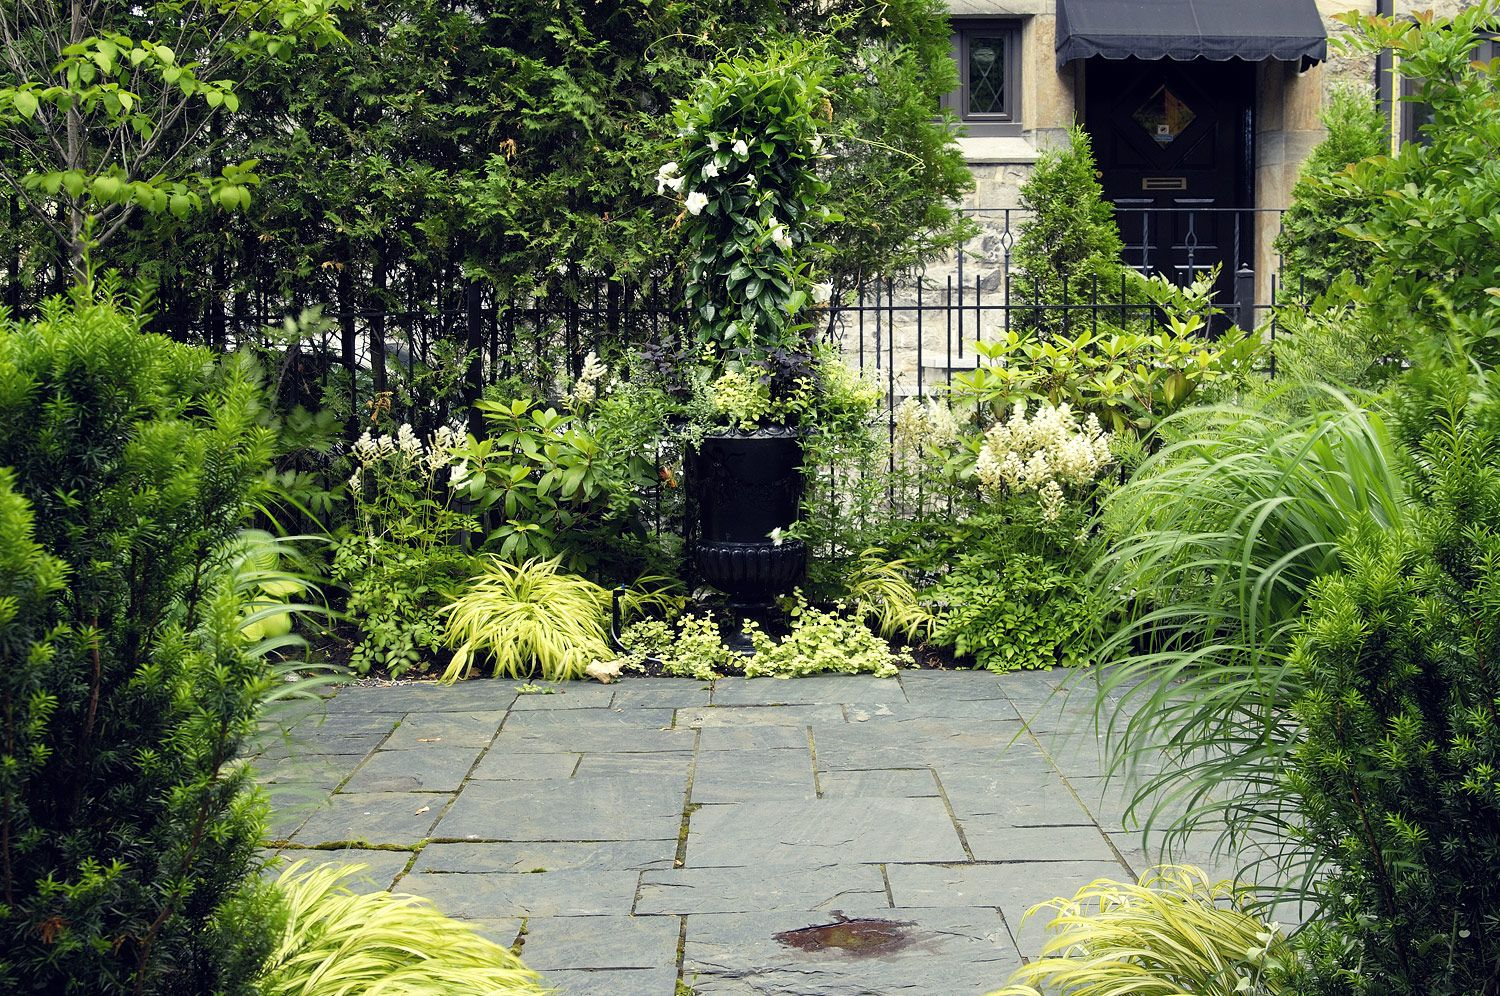 Hodgins and Associates - Landscape Design Services | Hodgins and Associates Landscape Architects - Montreal, Canada - Professional services certified by the APPQ.